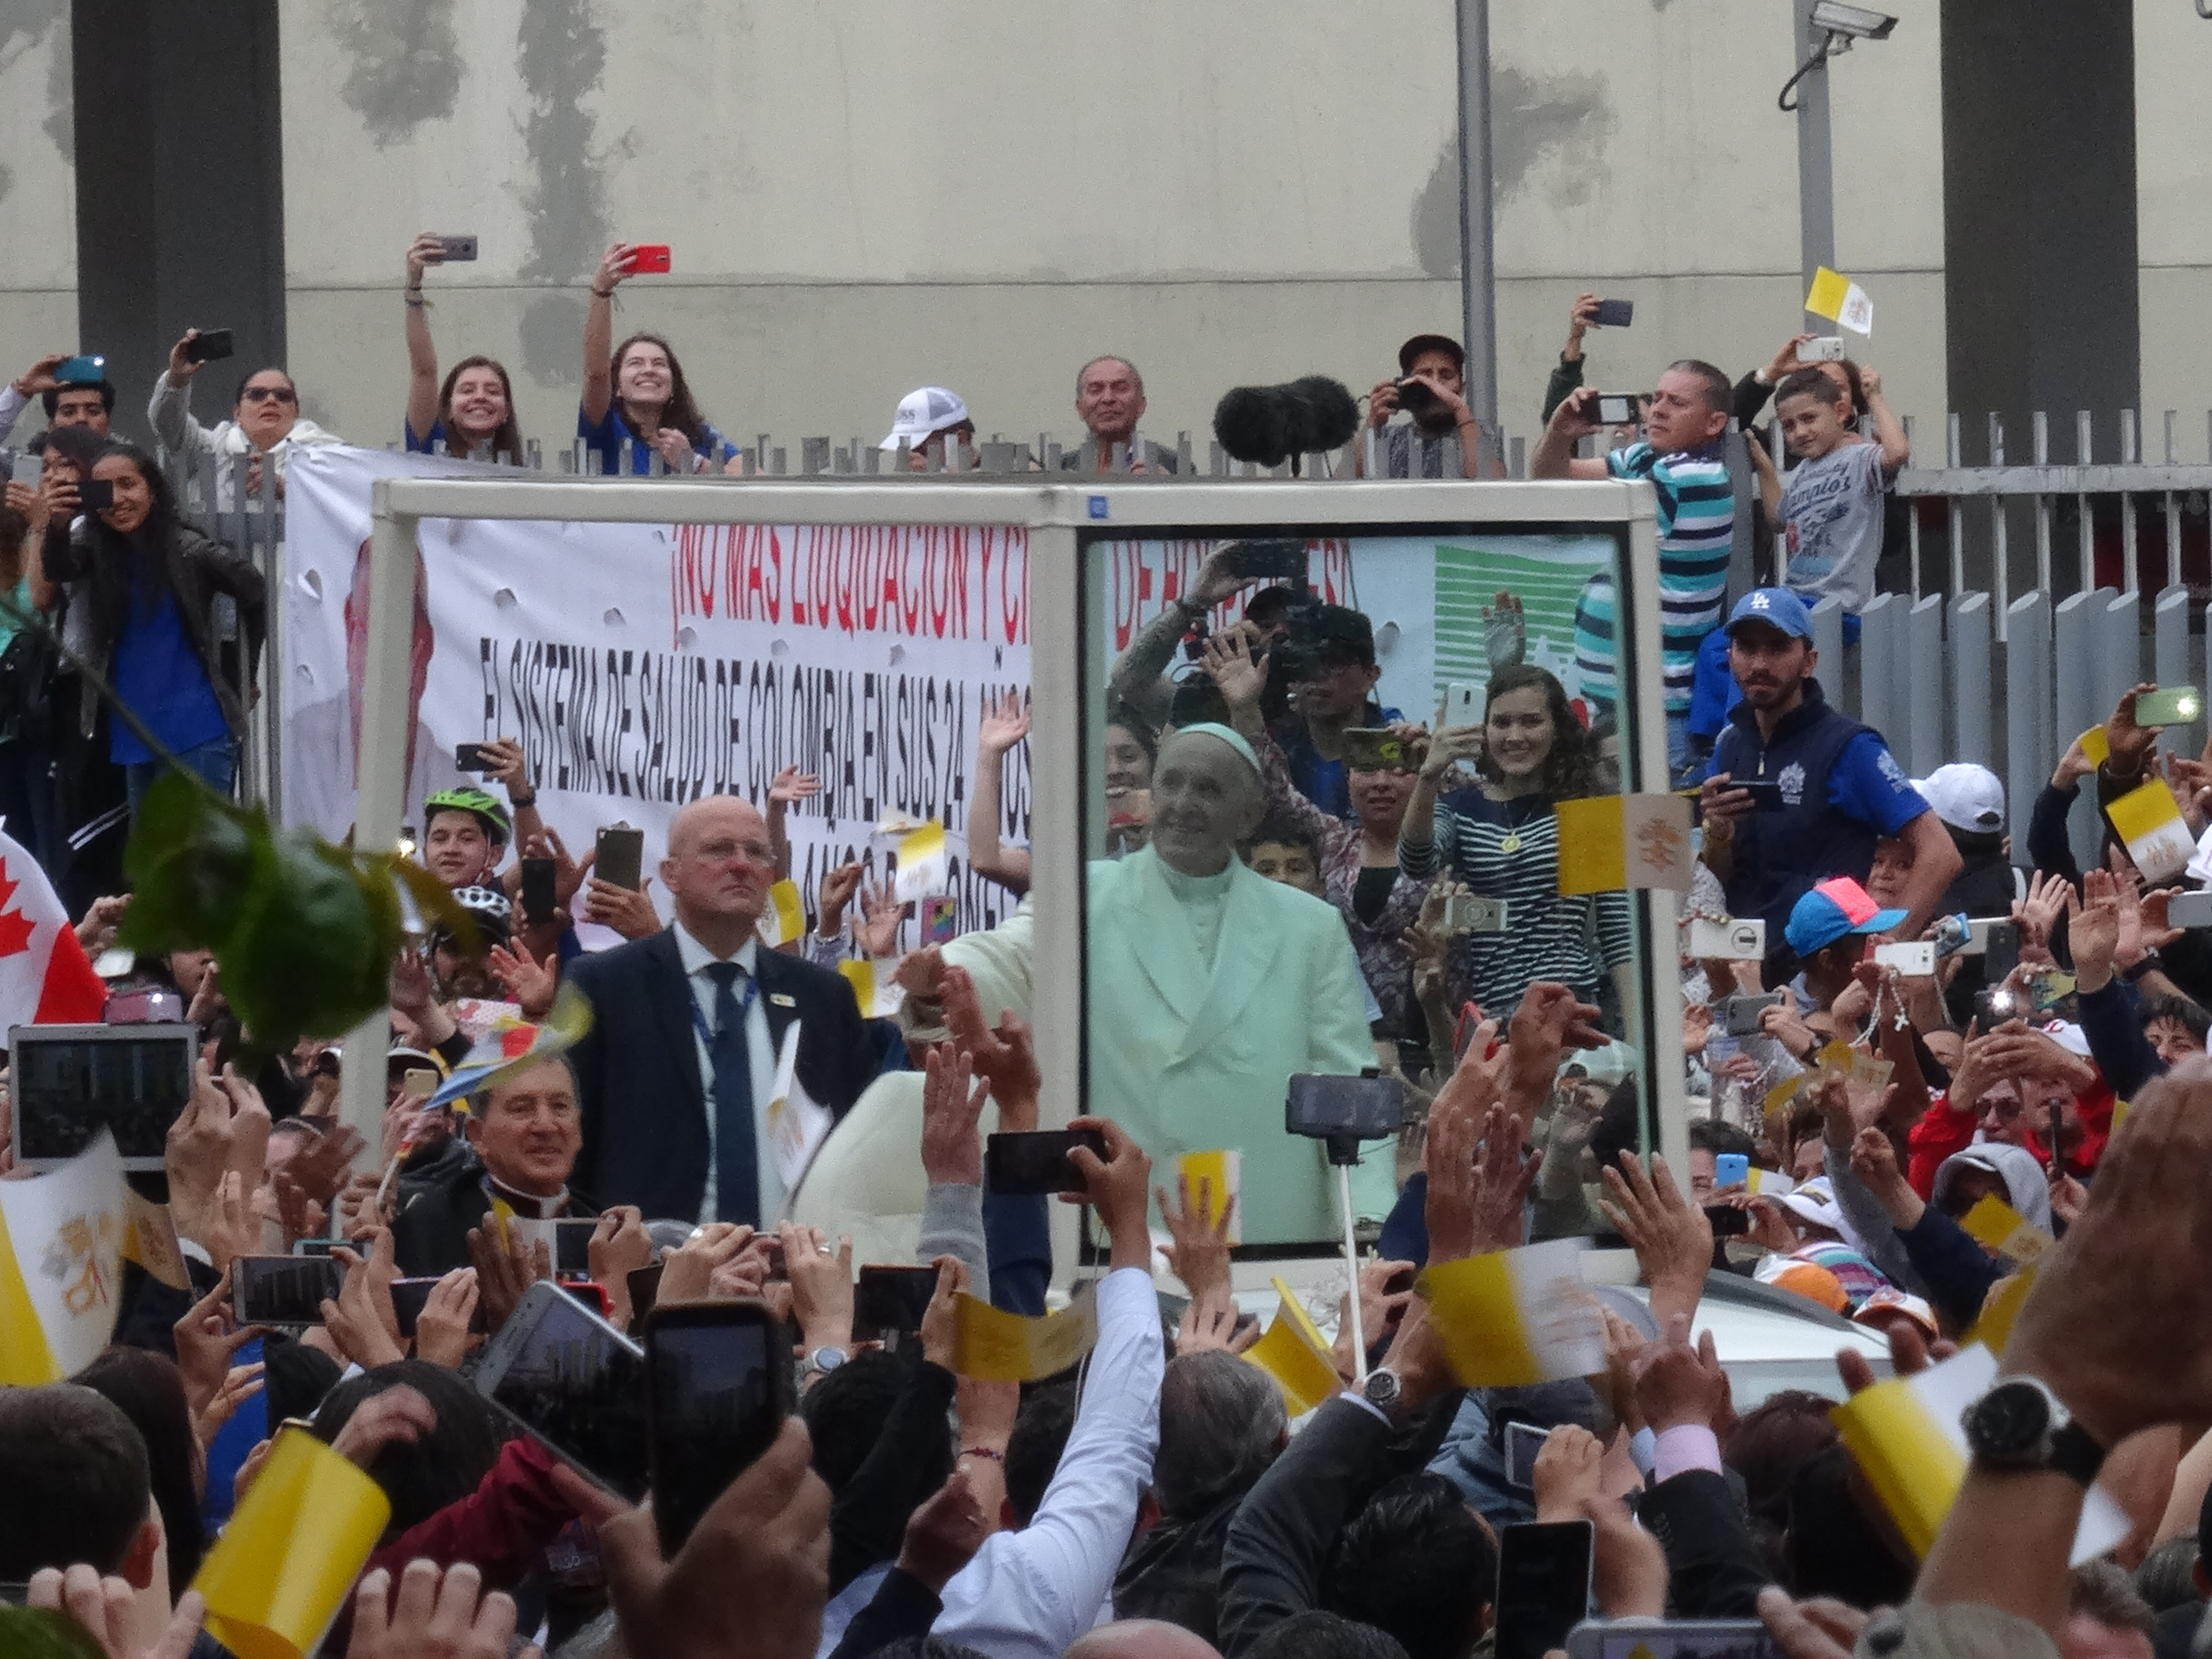 Pope in Popemobile with people surrounding him.